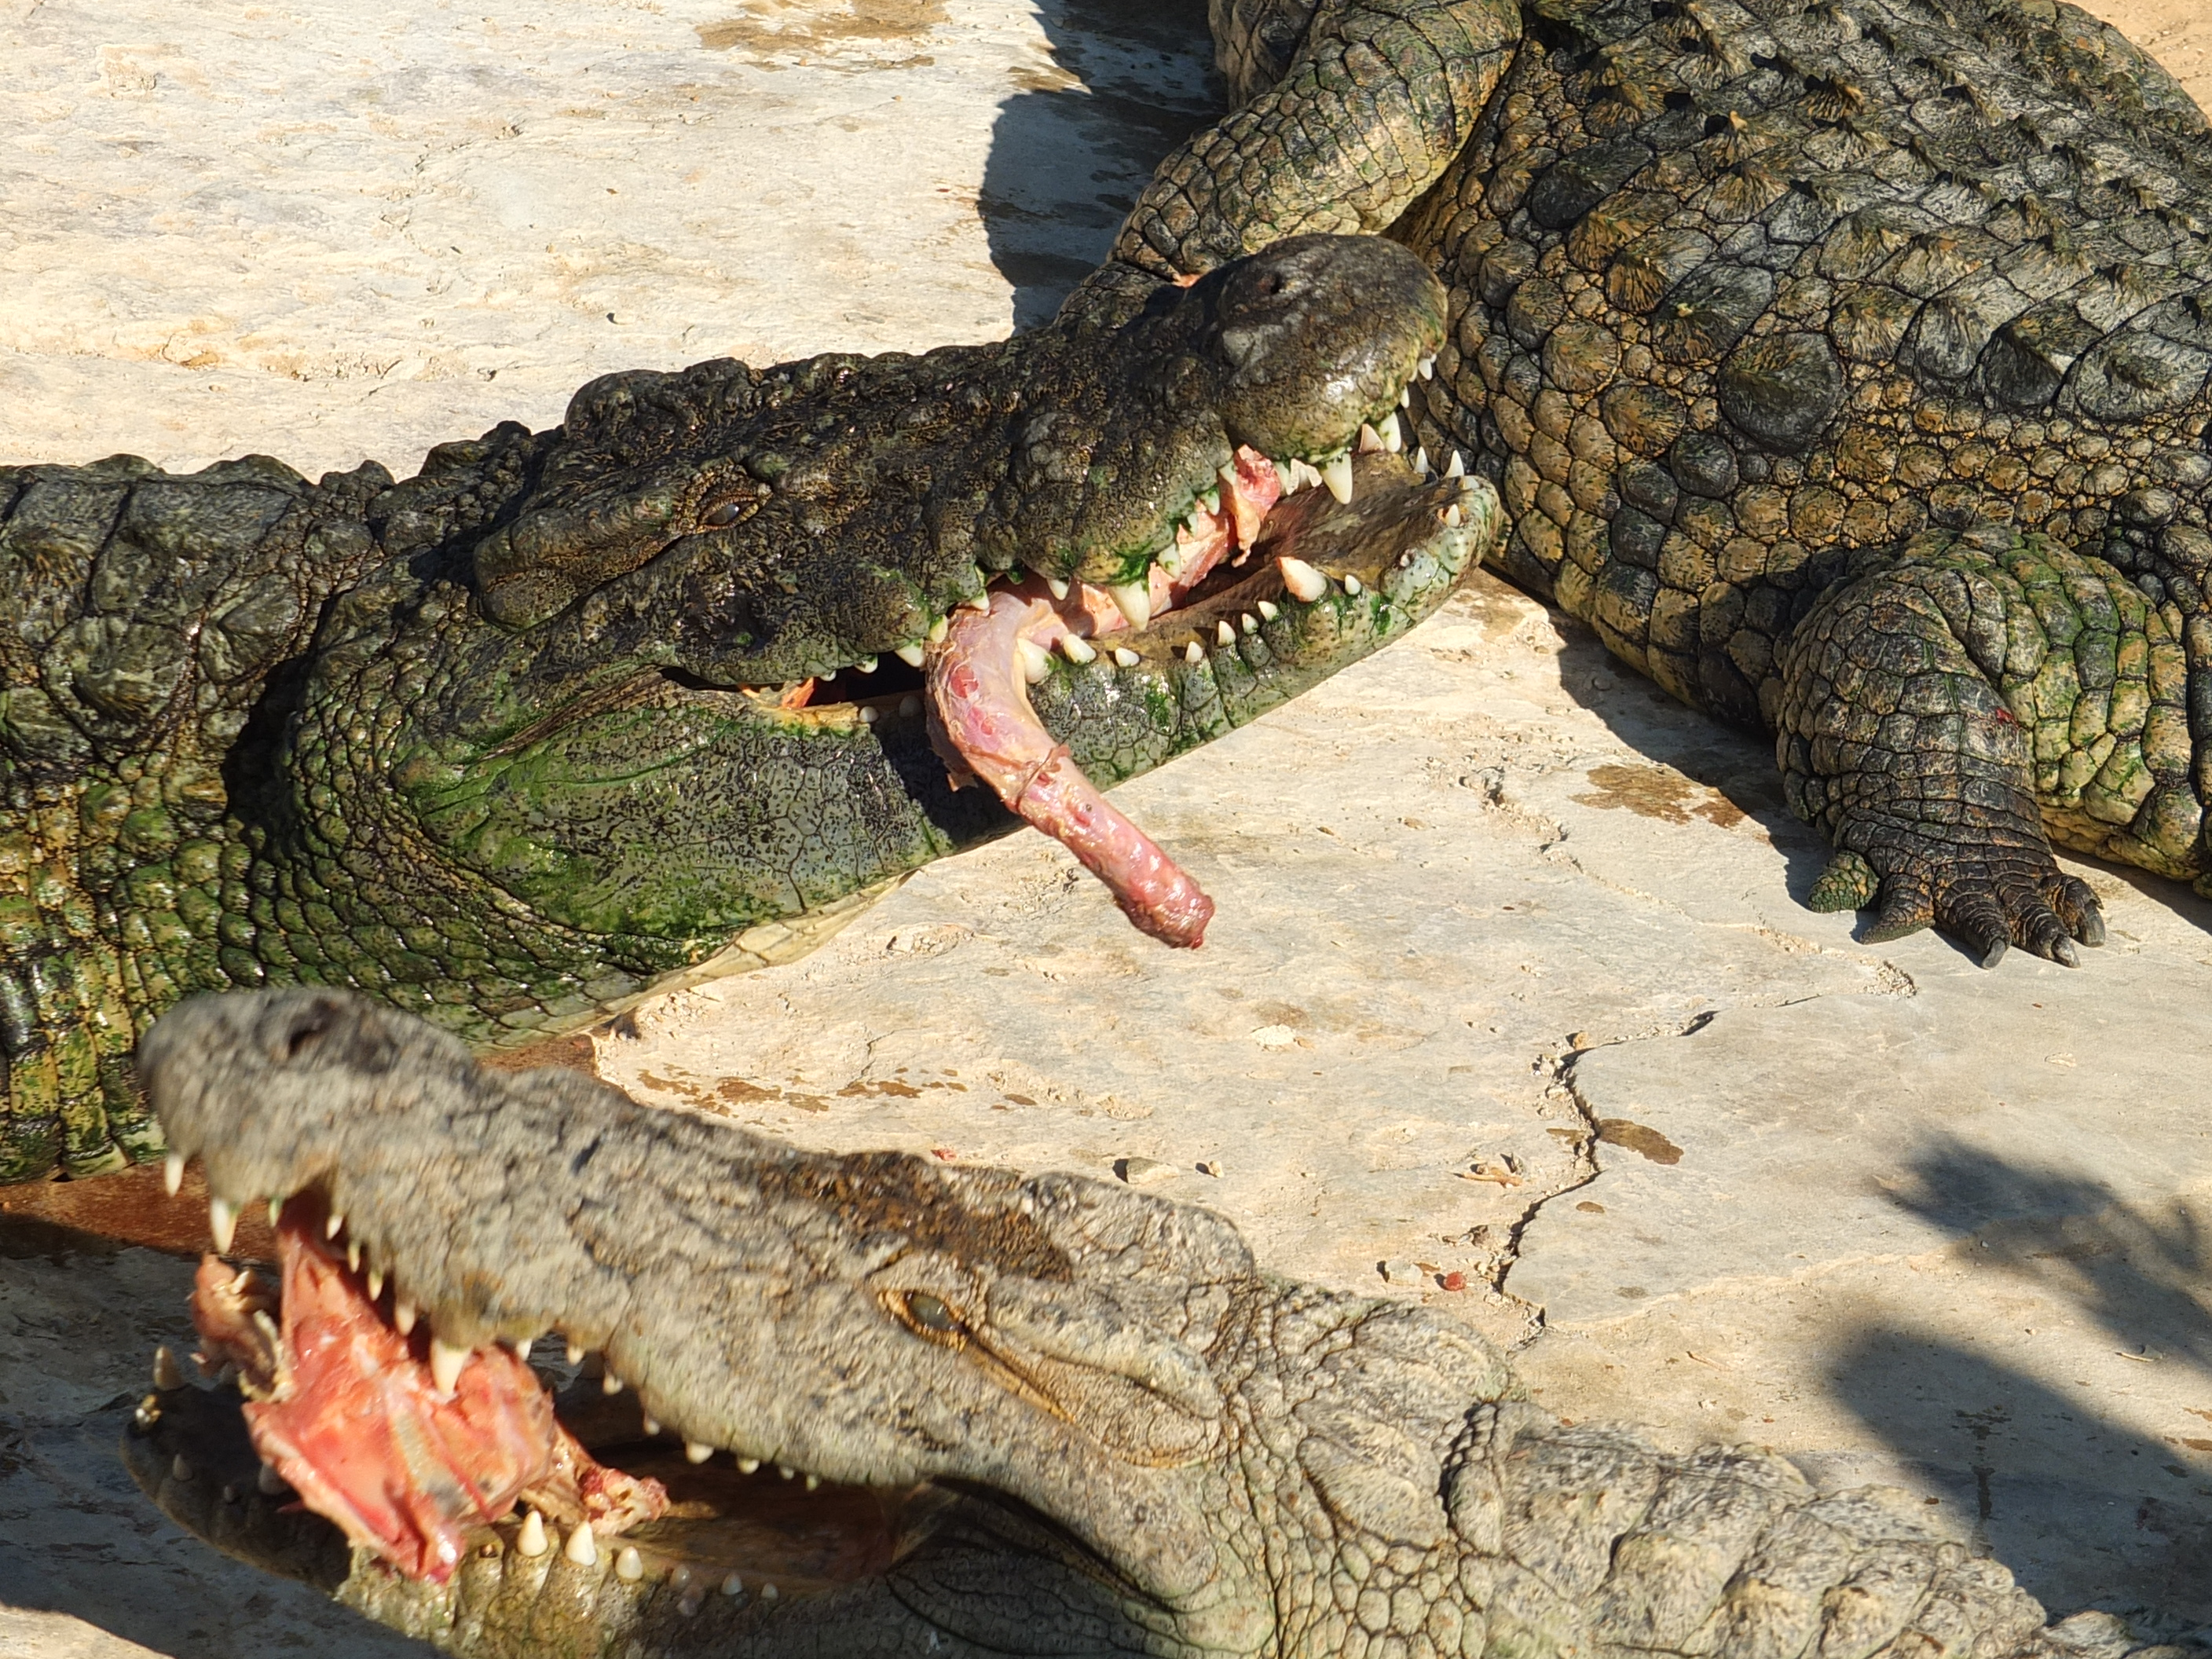 File:Djerba Explore Nile Crocodiles eating 02.JPG ...